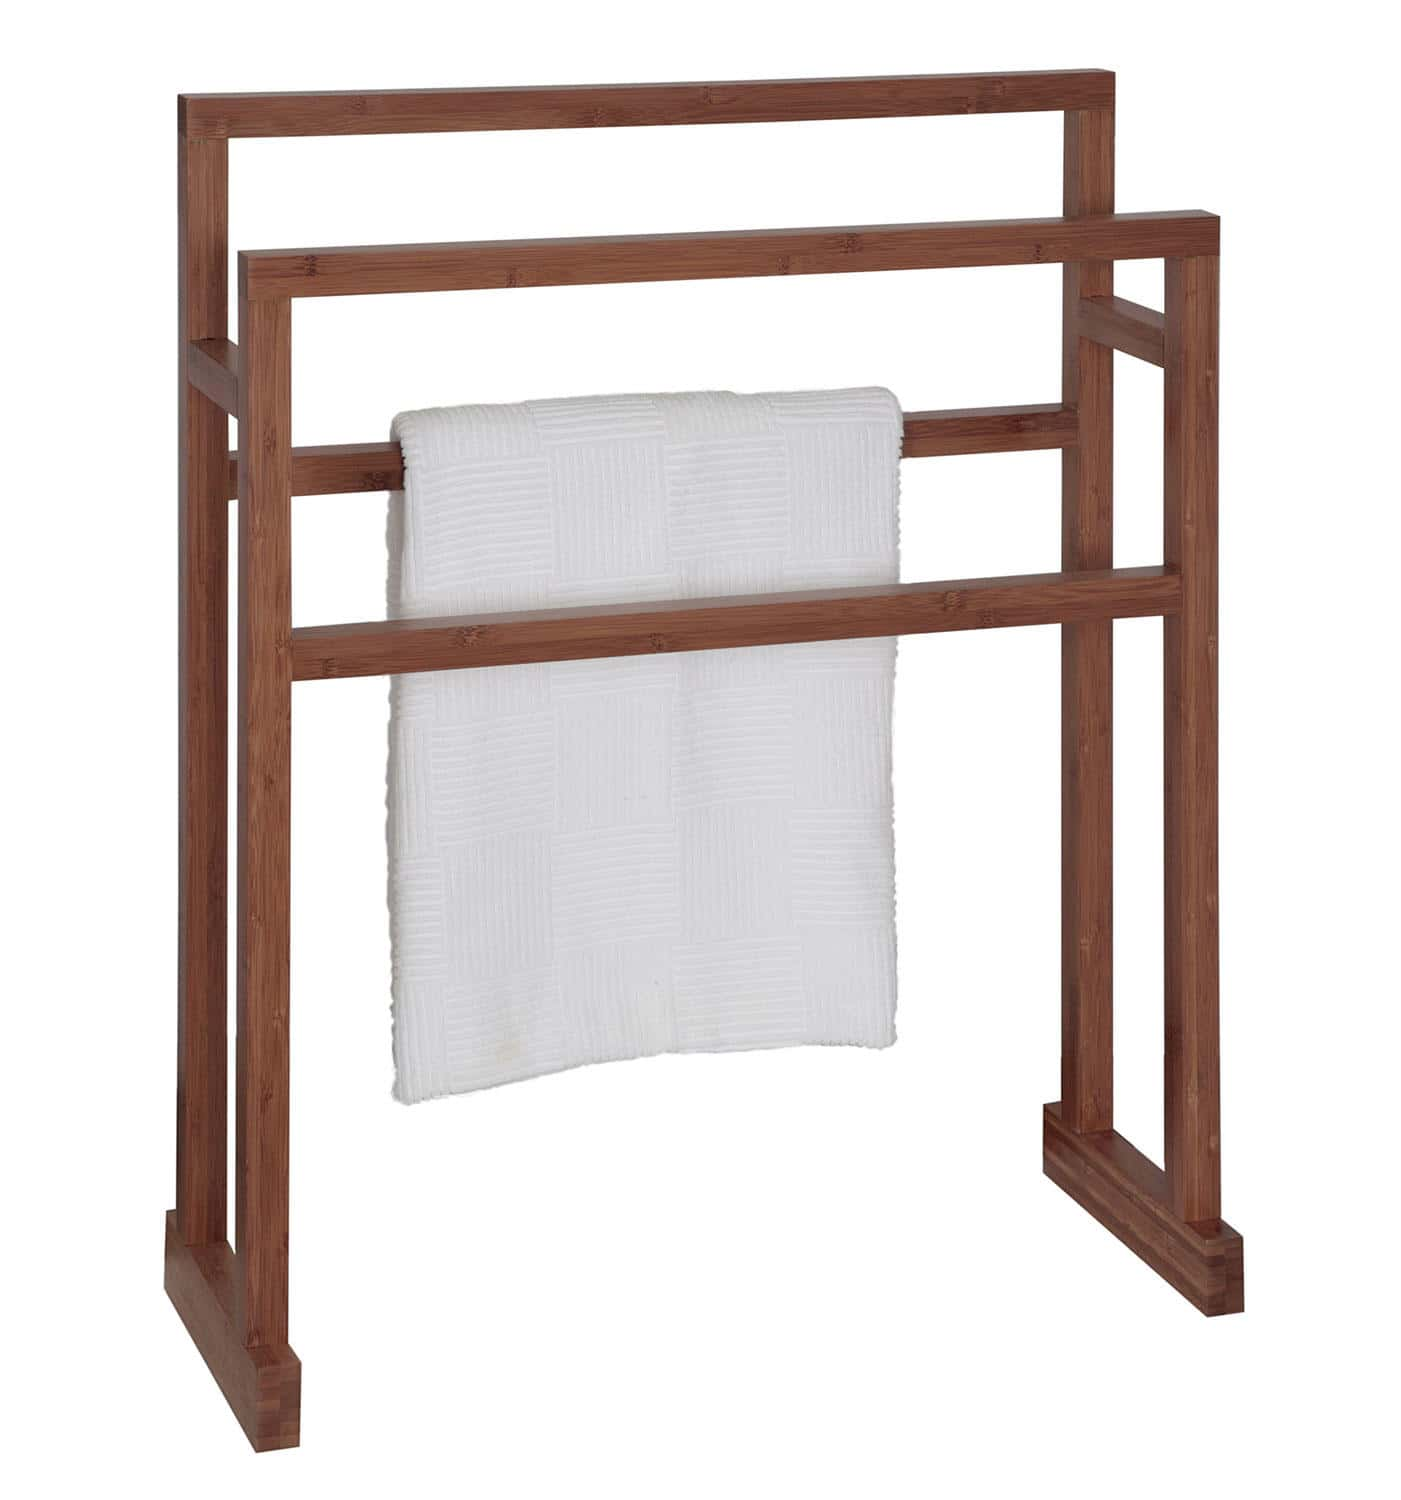 Free Standing Wooden Towel Rack